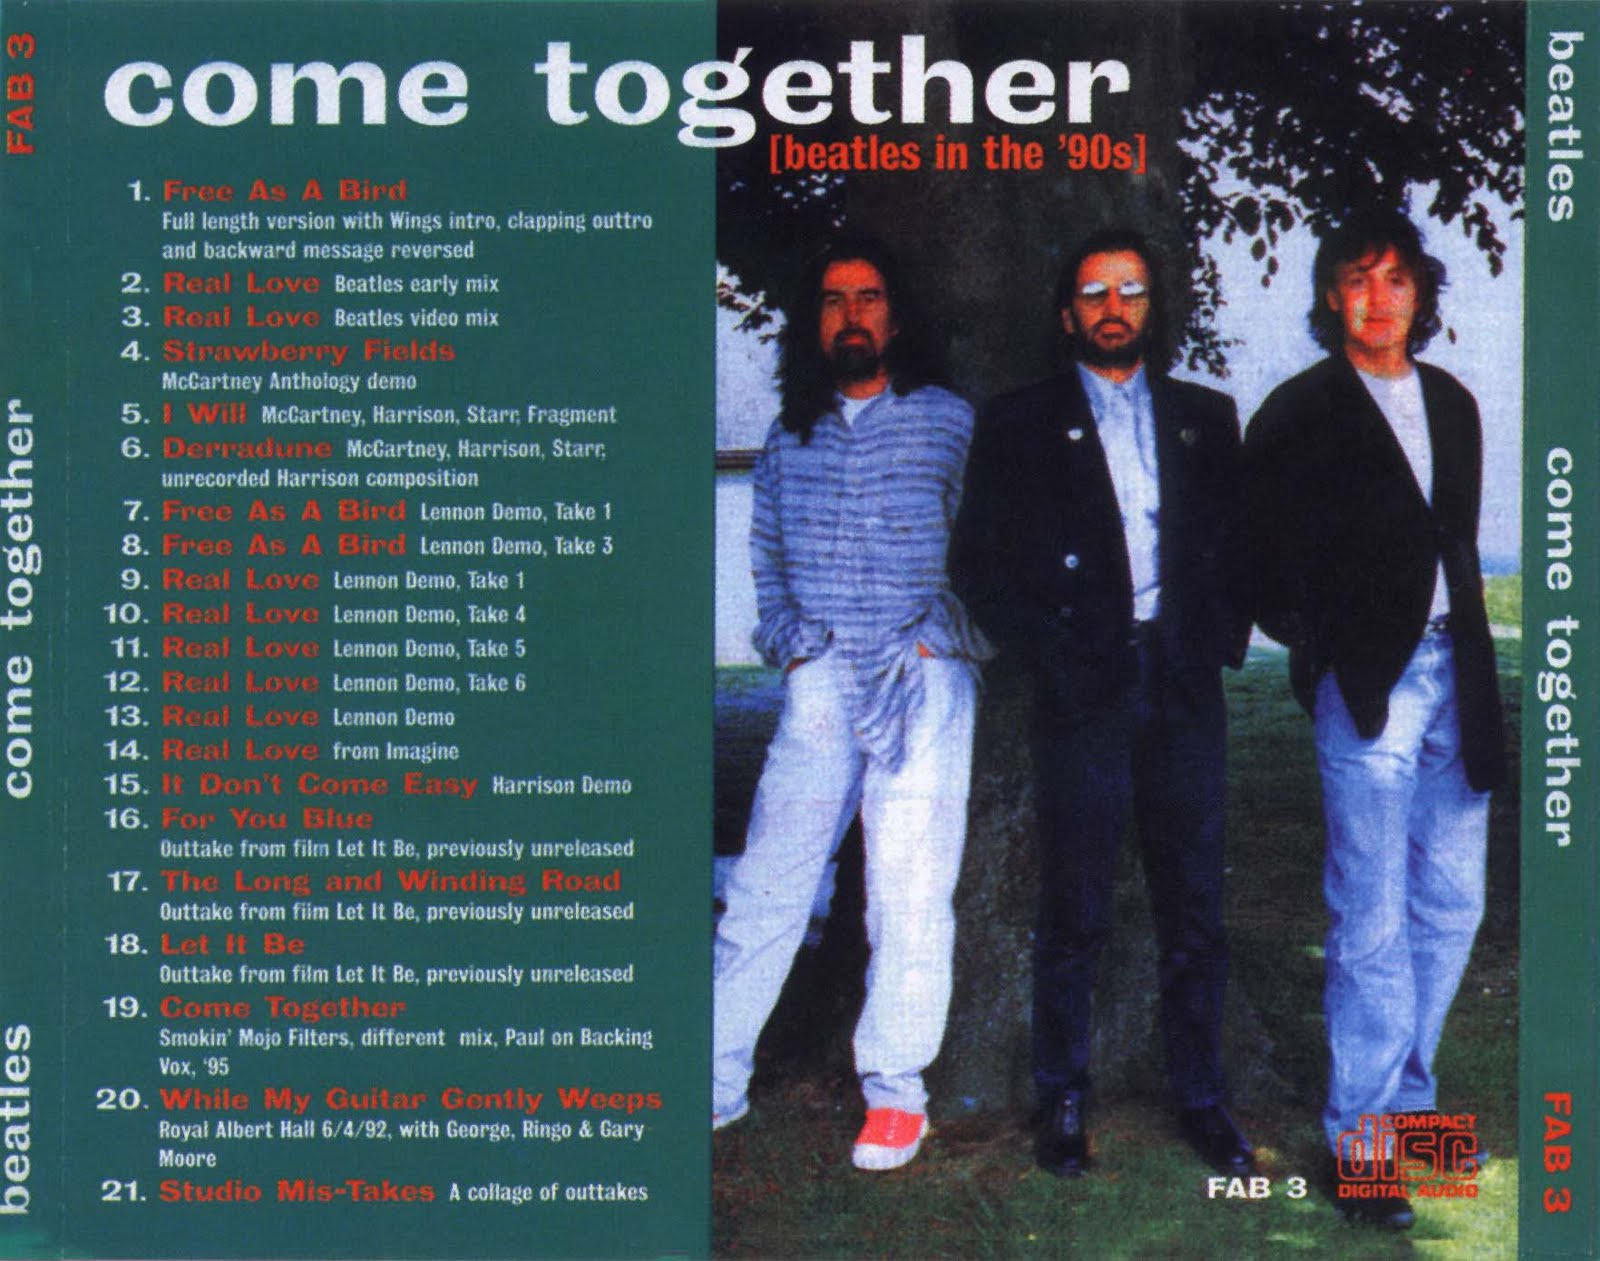 The Be・・・・: Come Together (Beatles In The '90s) - The Beatles